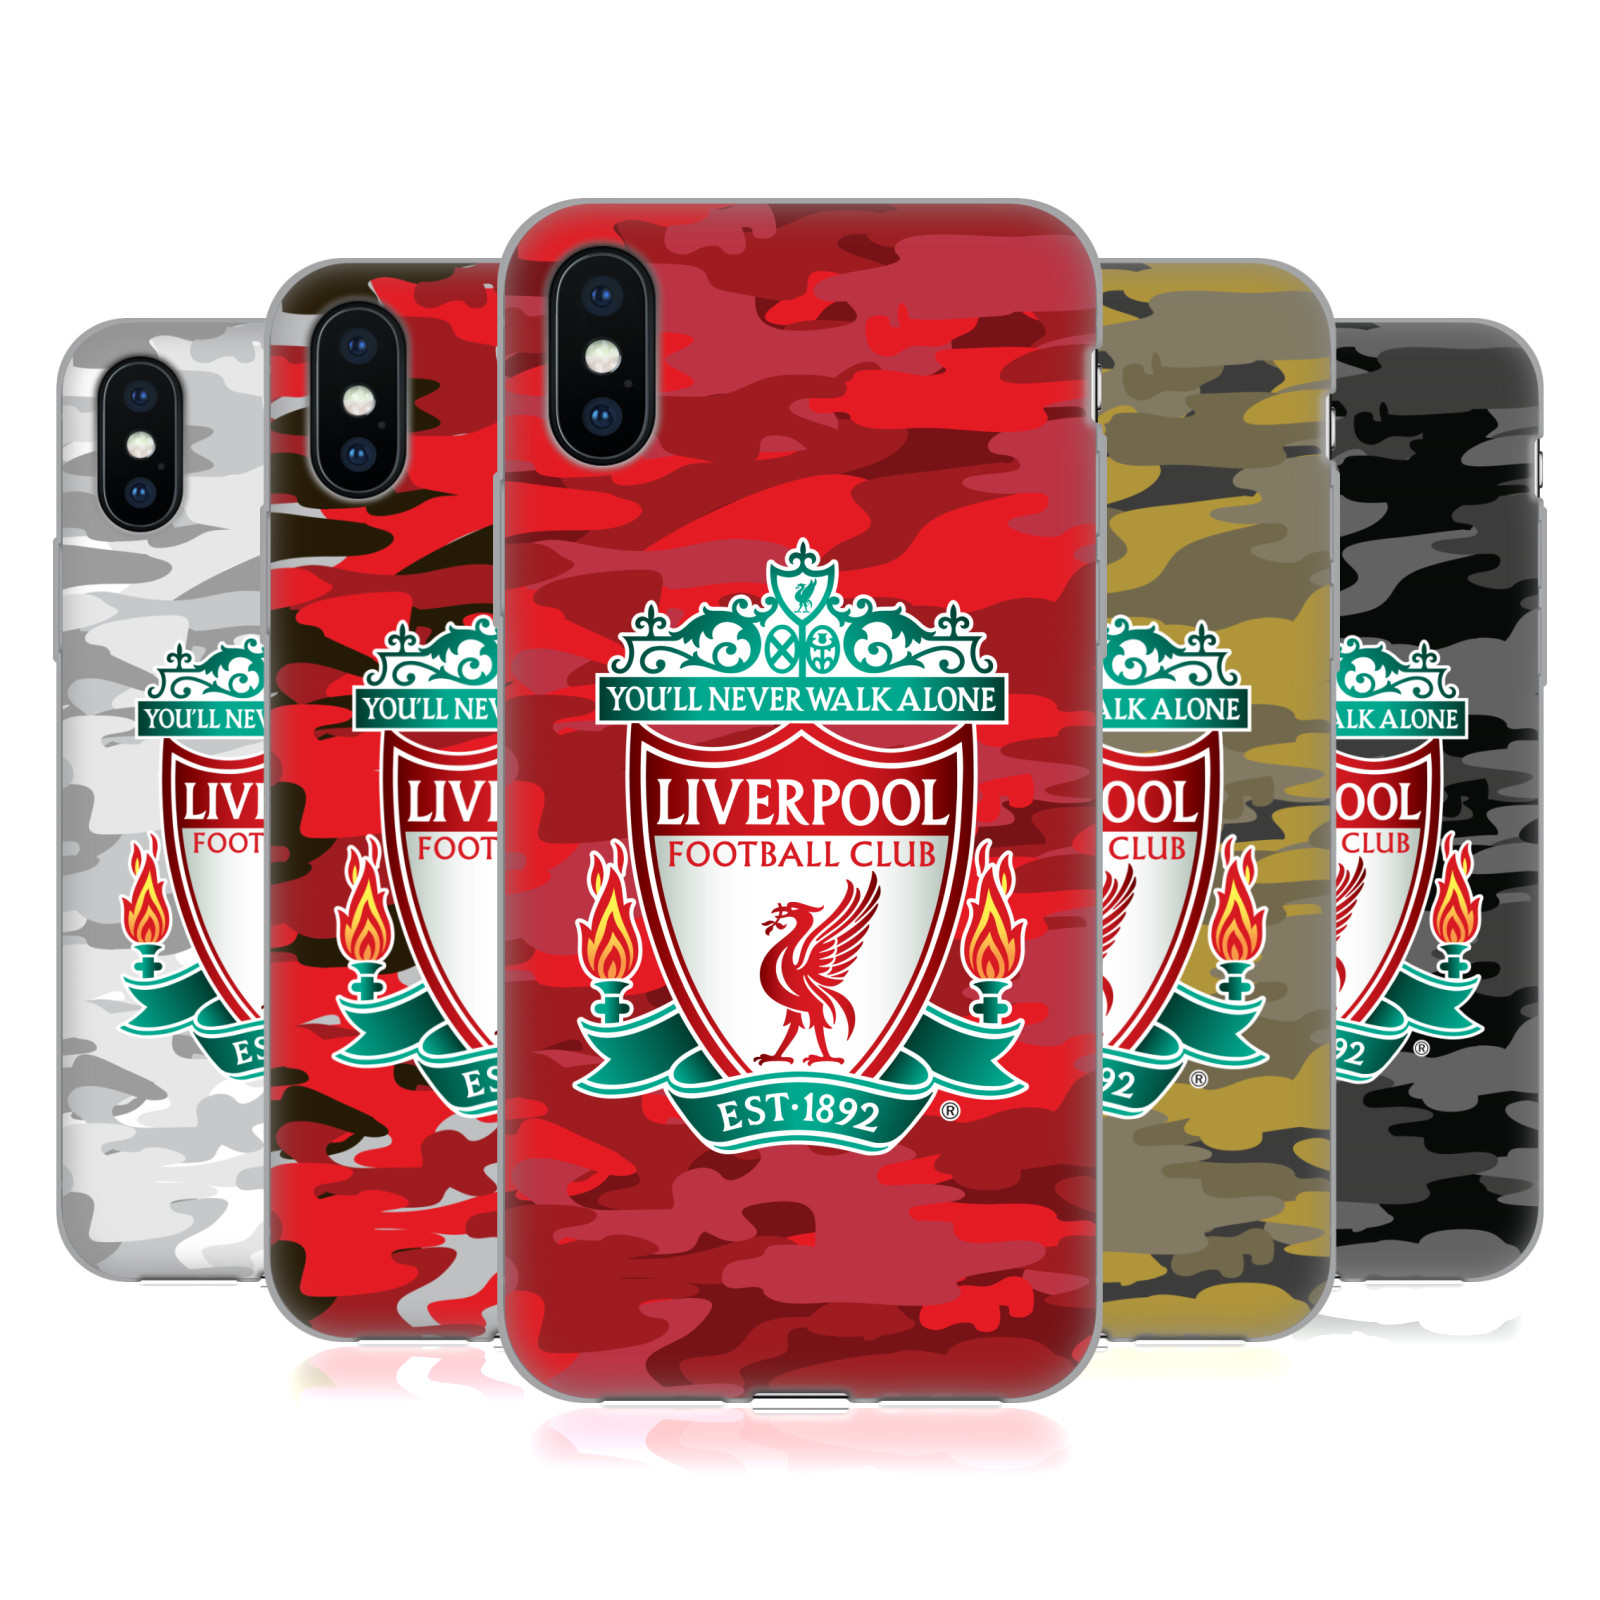 Liverpool Football Club Camou